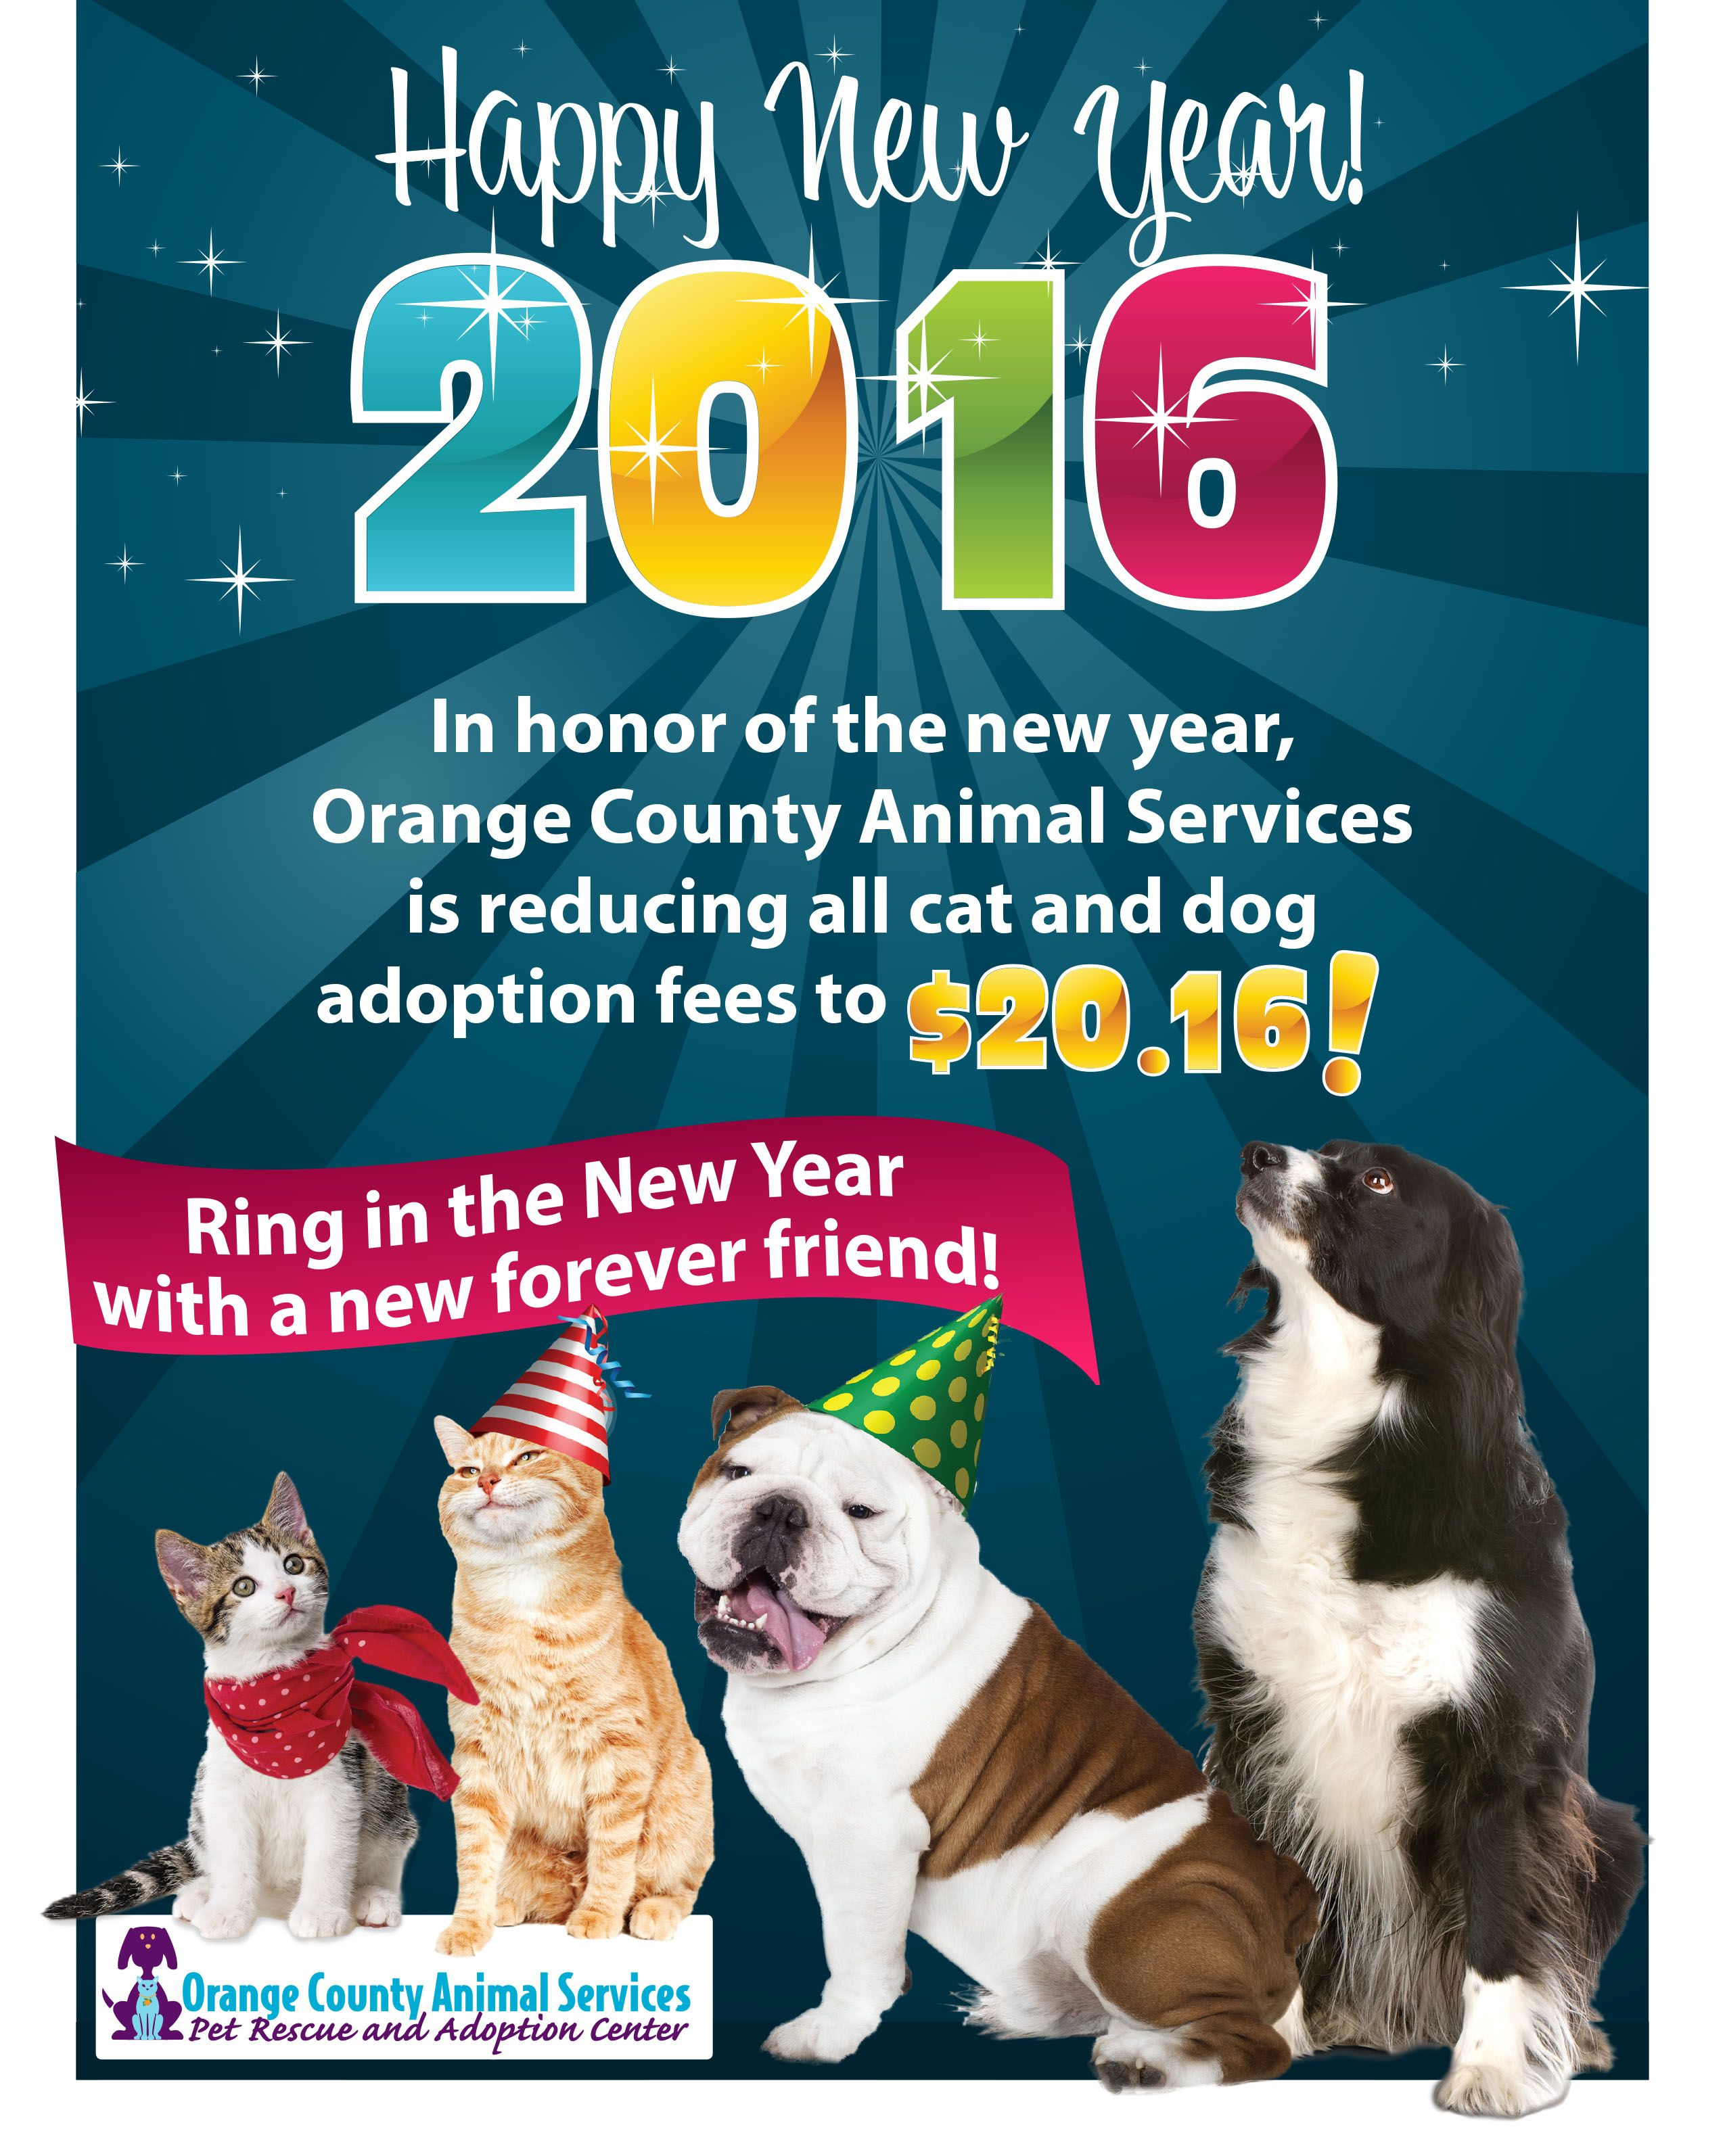 Animal Shelter Adoption Promotion Ideas Animal Shelter Adoption Animal Shelter Adoption